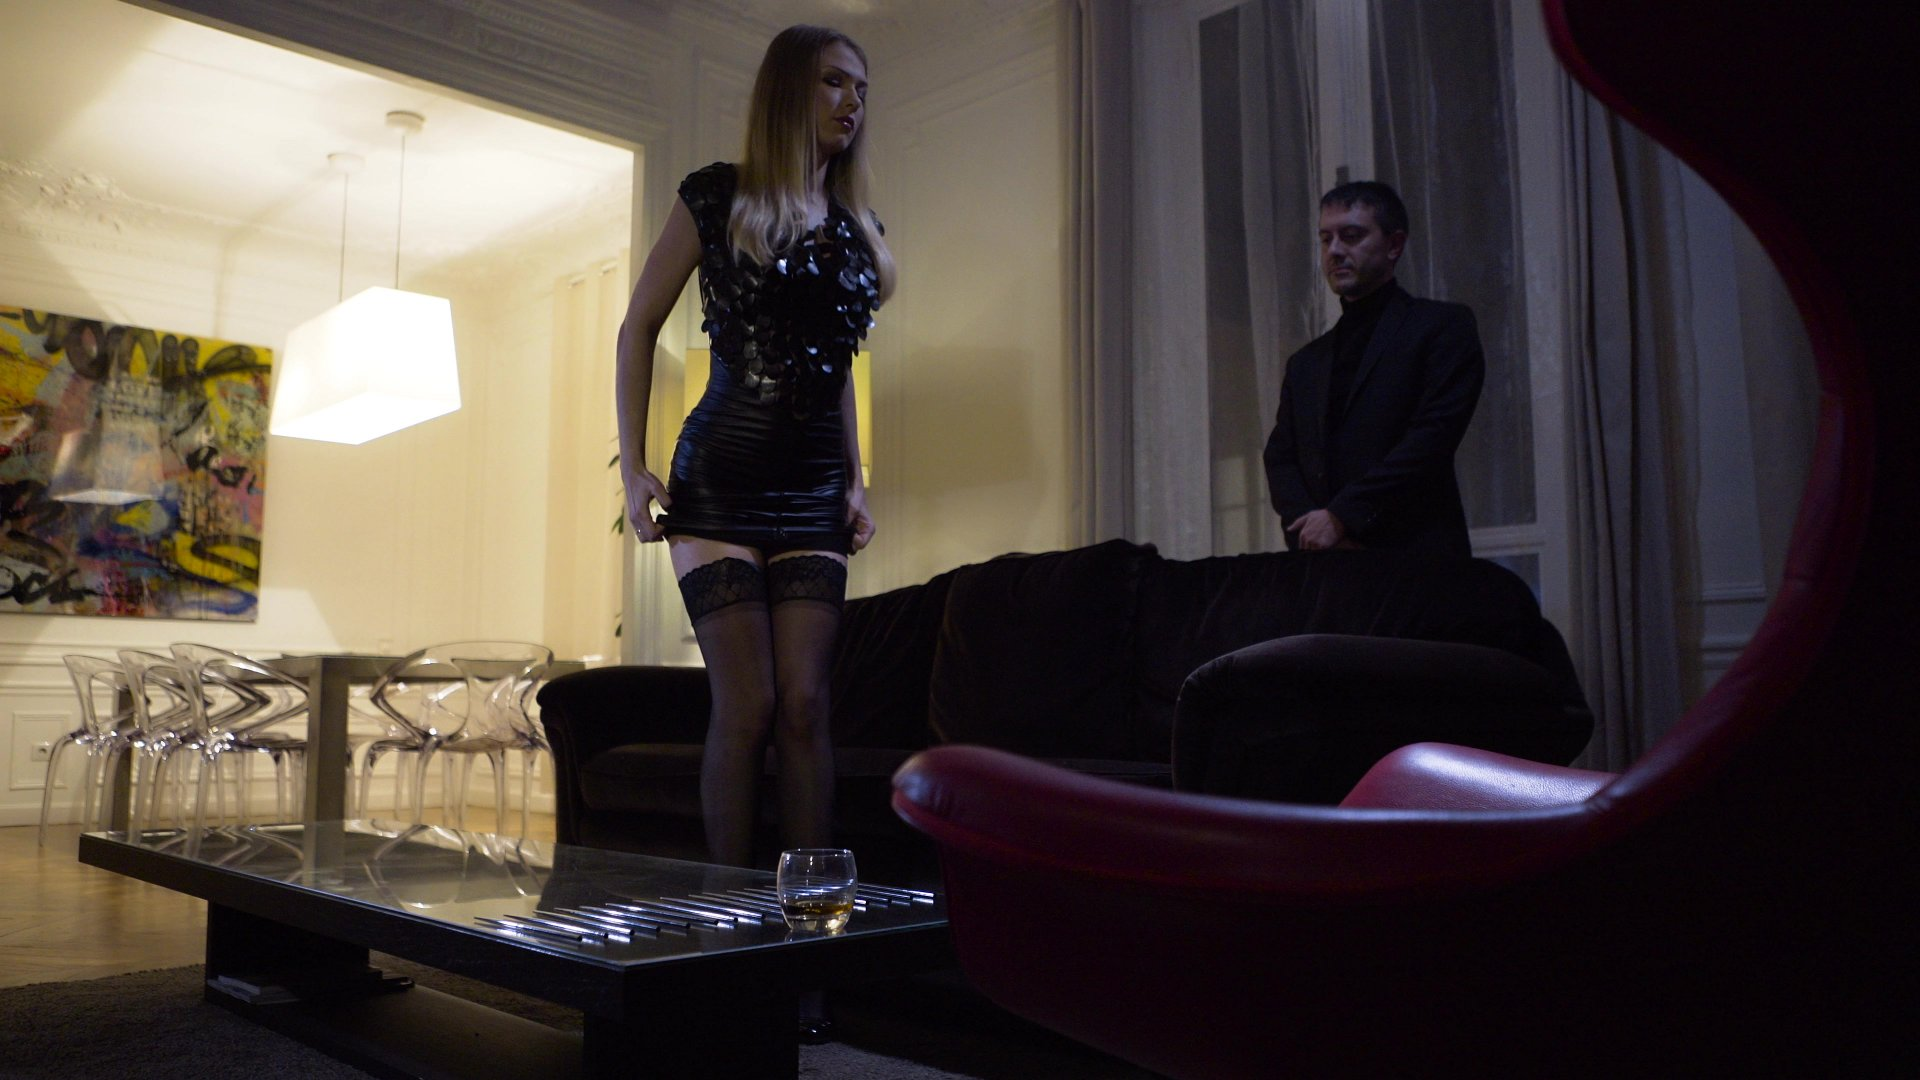 Preview image 2 out of 18  of scene 3 from Claire Desires Of Submission